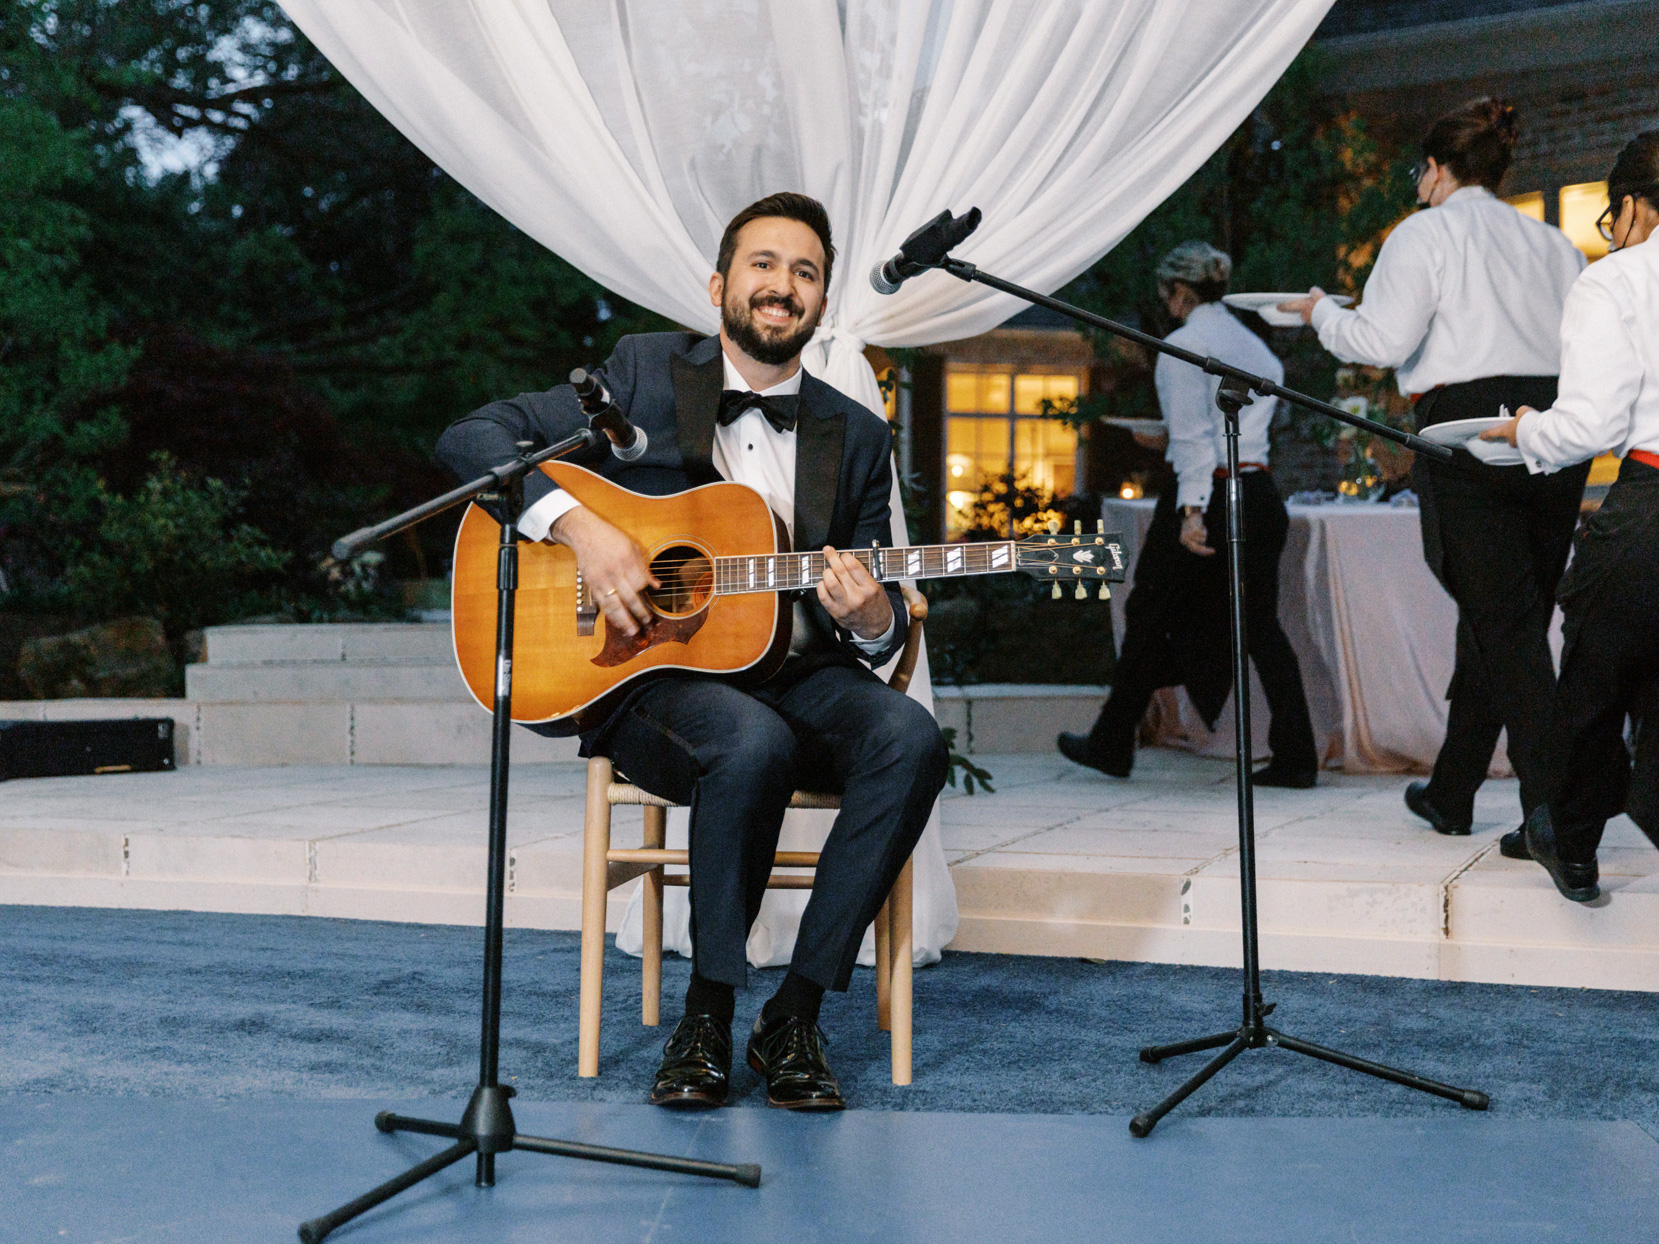 groom smiling during guitar reception performance